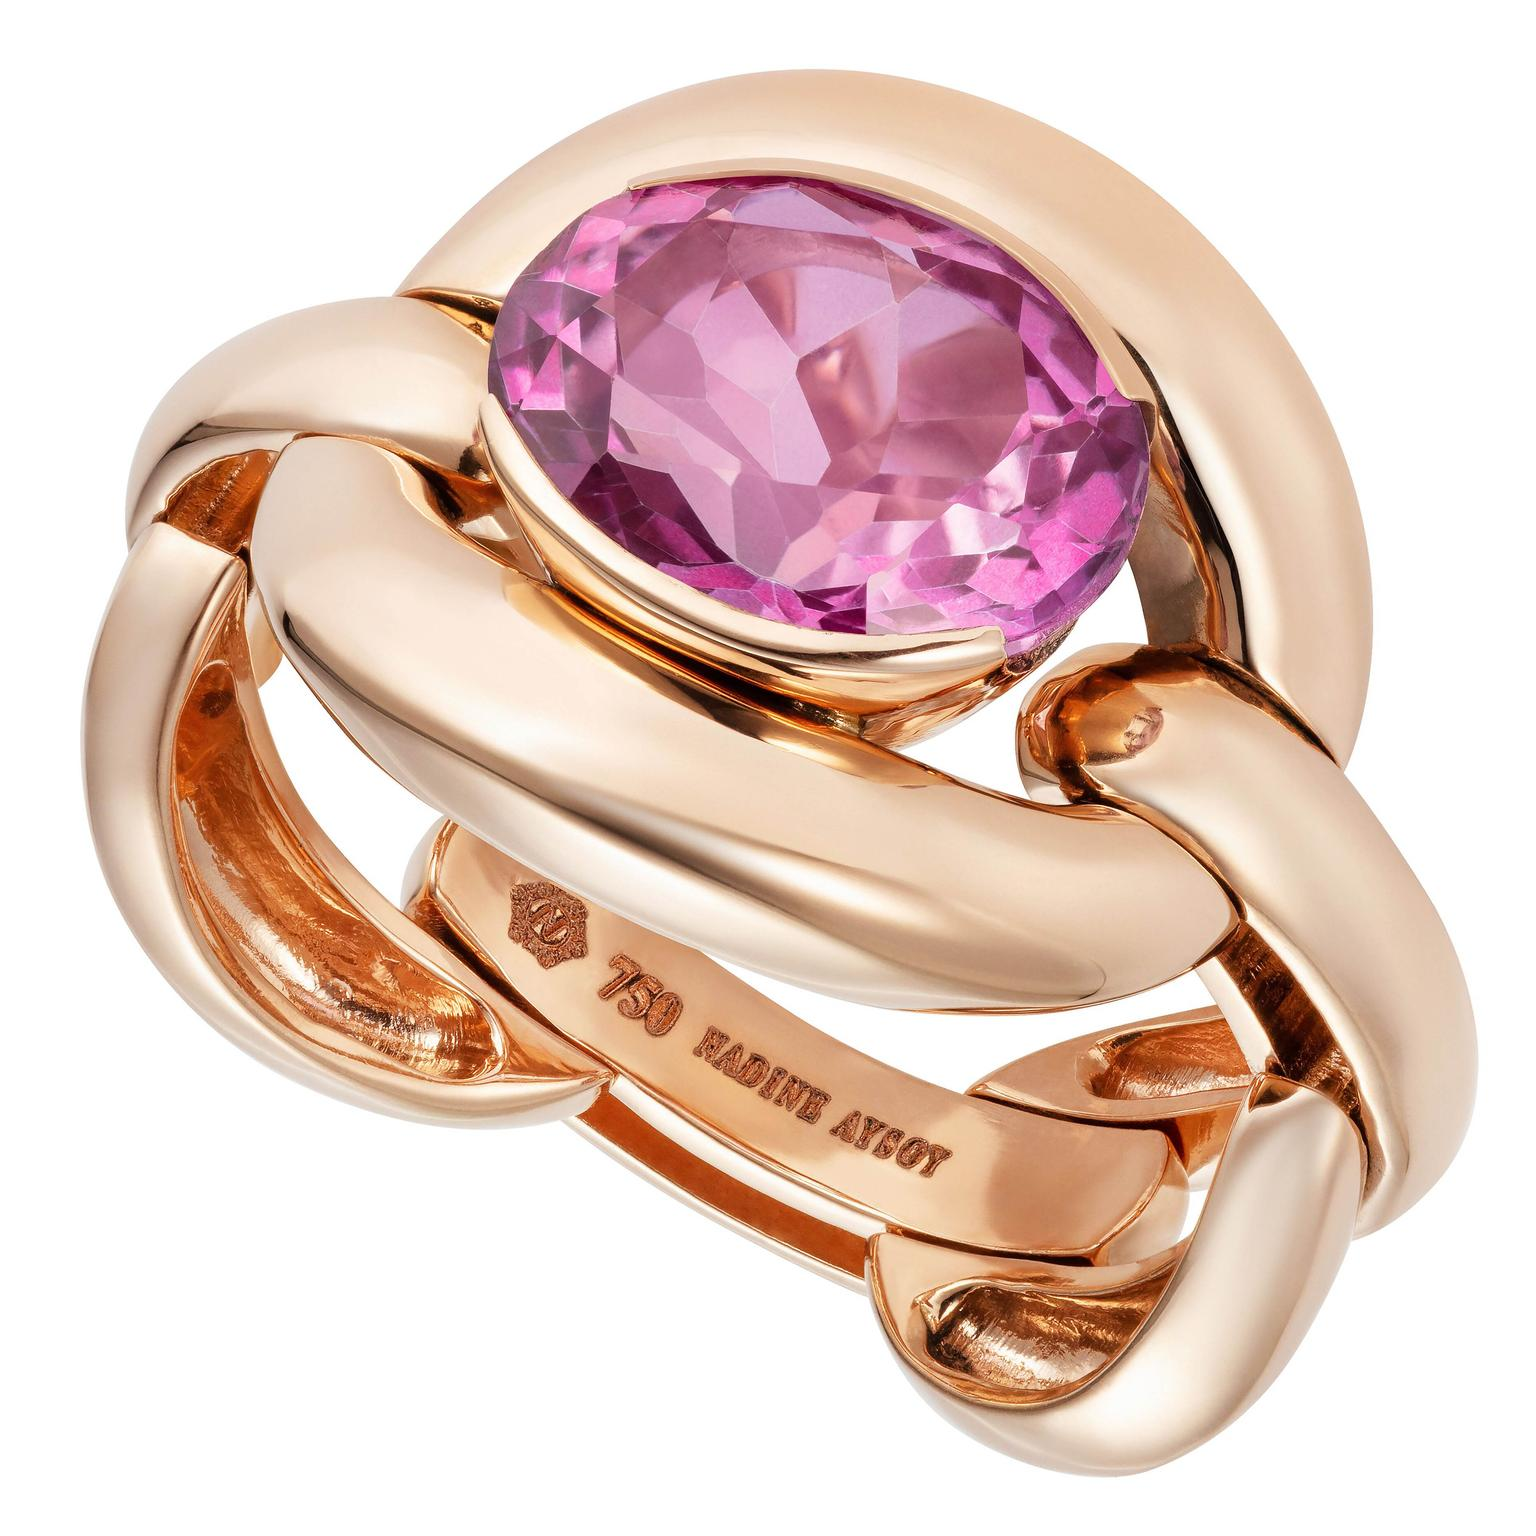 Catena ring from Nadine Aysoy